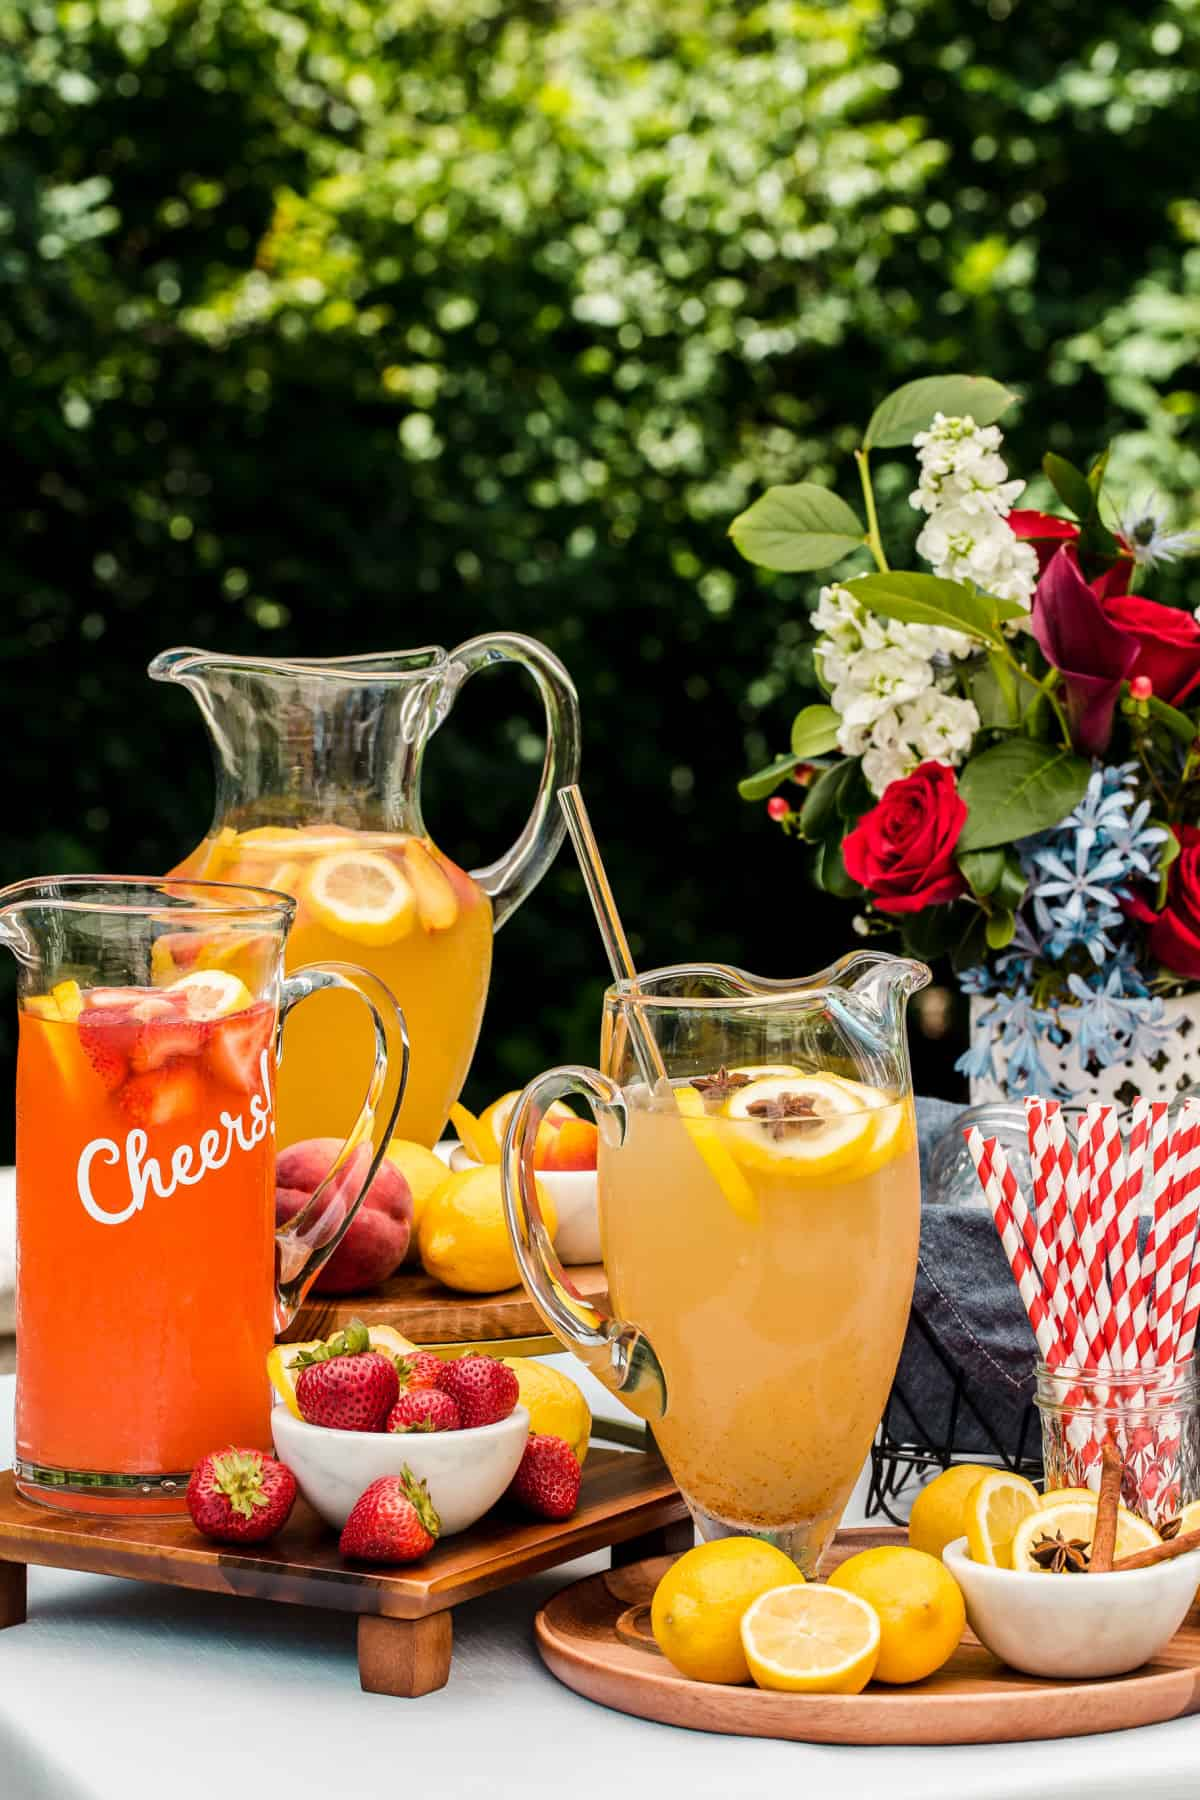 3 pitchers of lemonade in different flavors with fresh lemons and fruit, outside